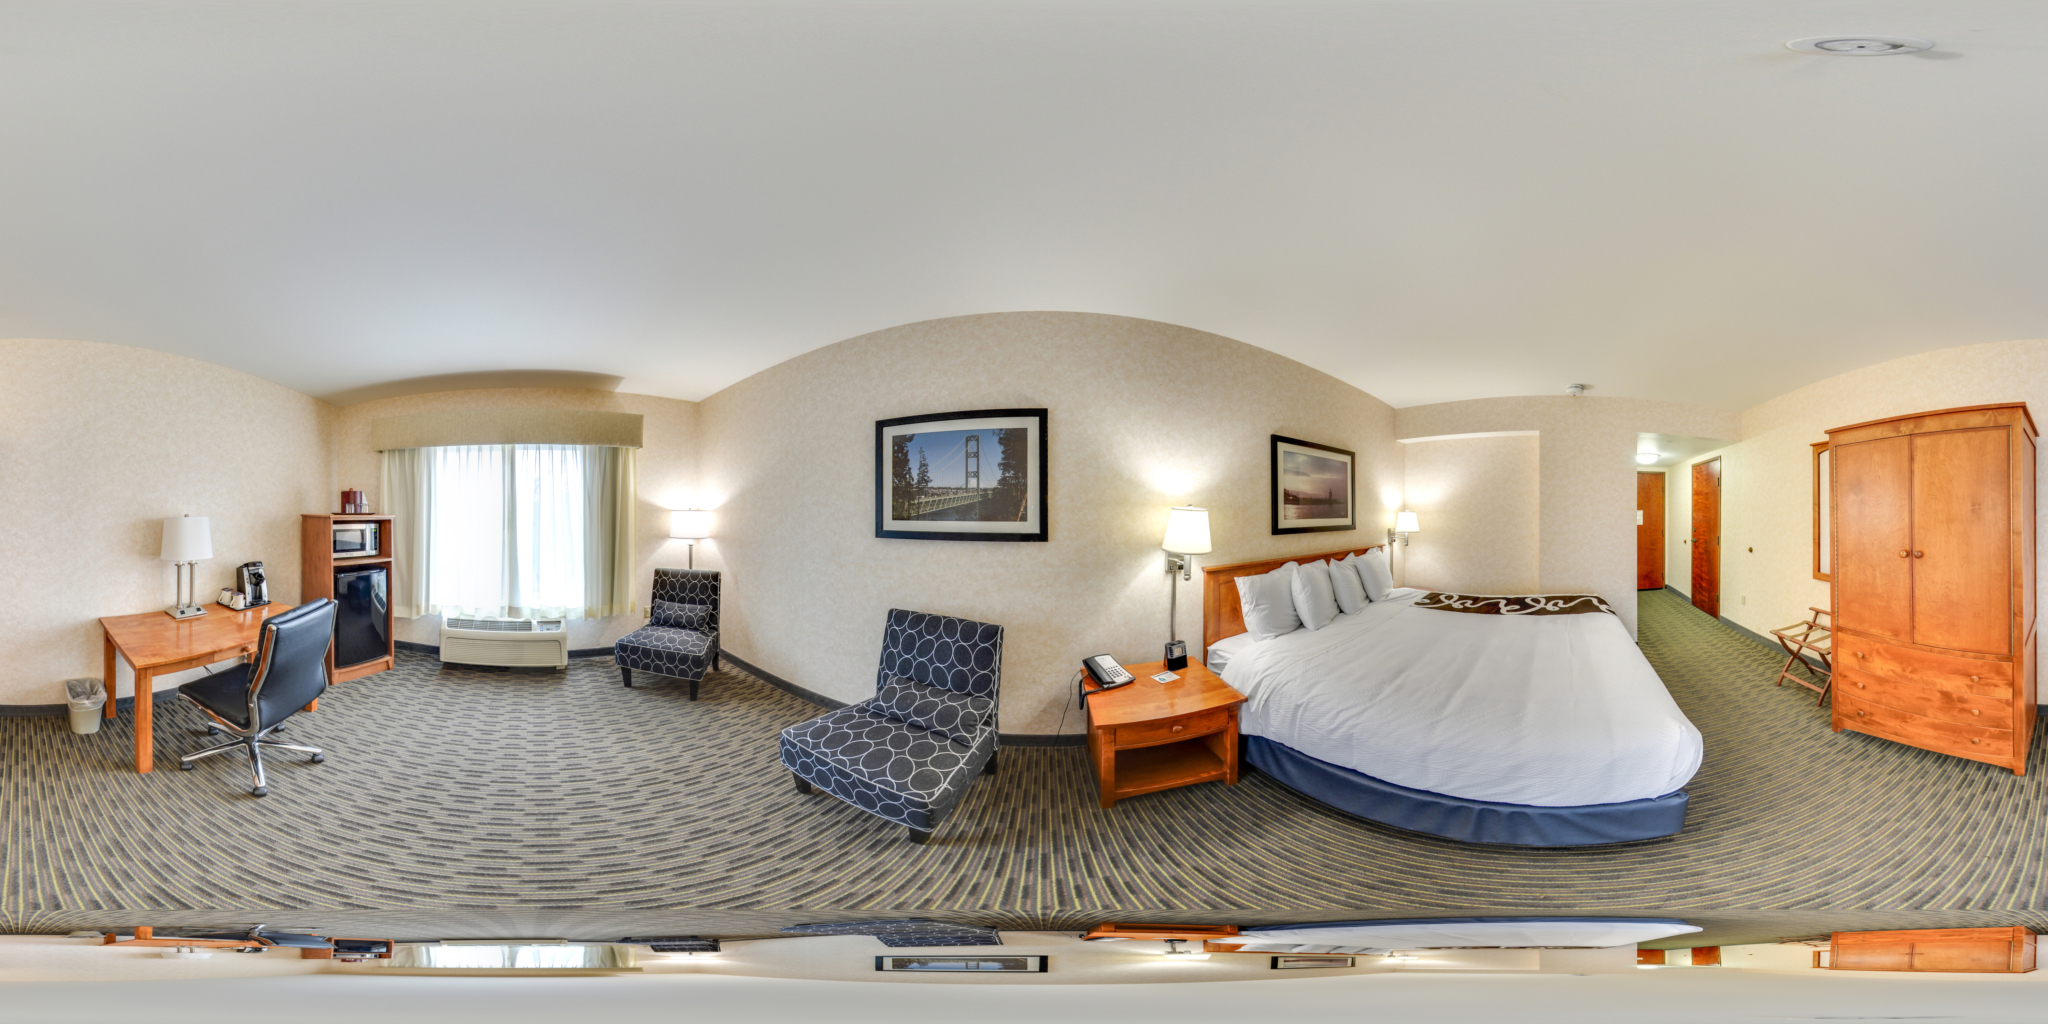 Panorama view of hotel room with king bed.